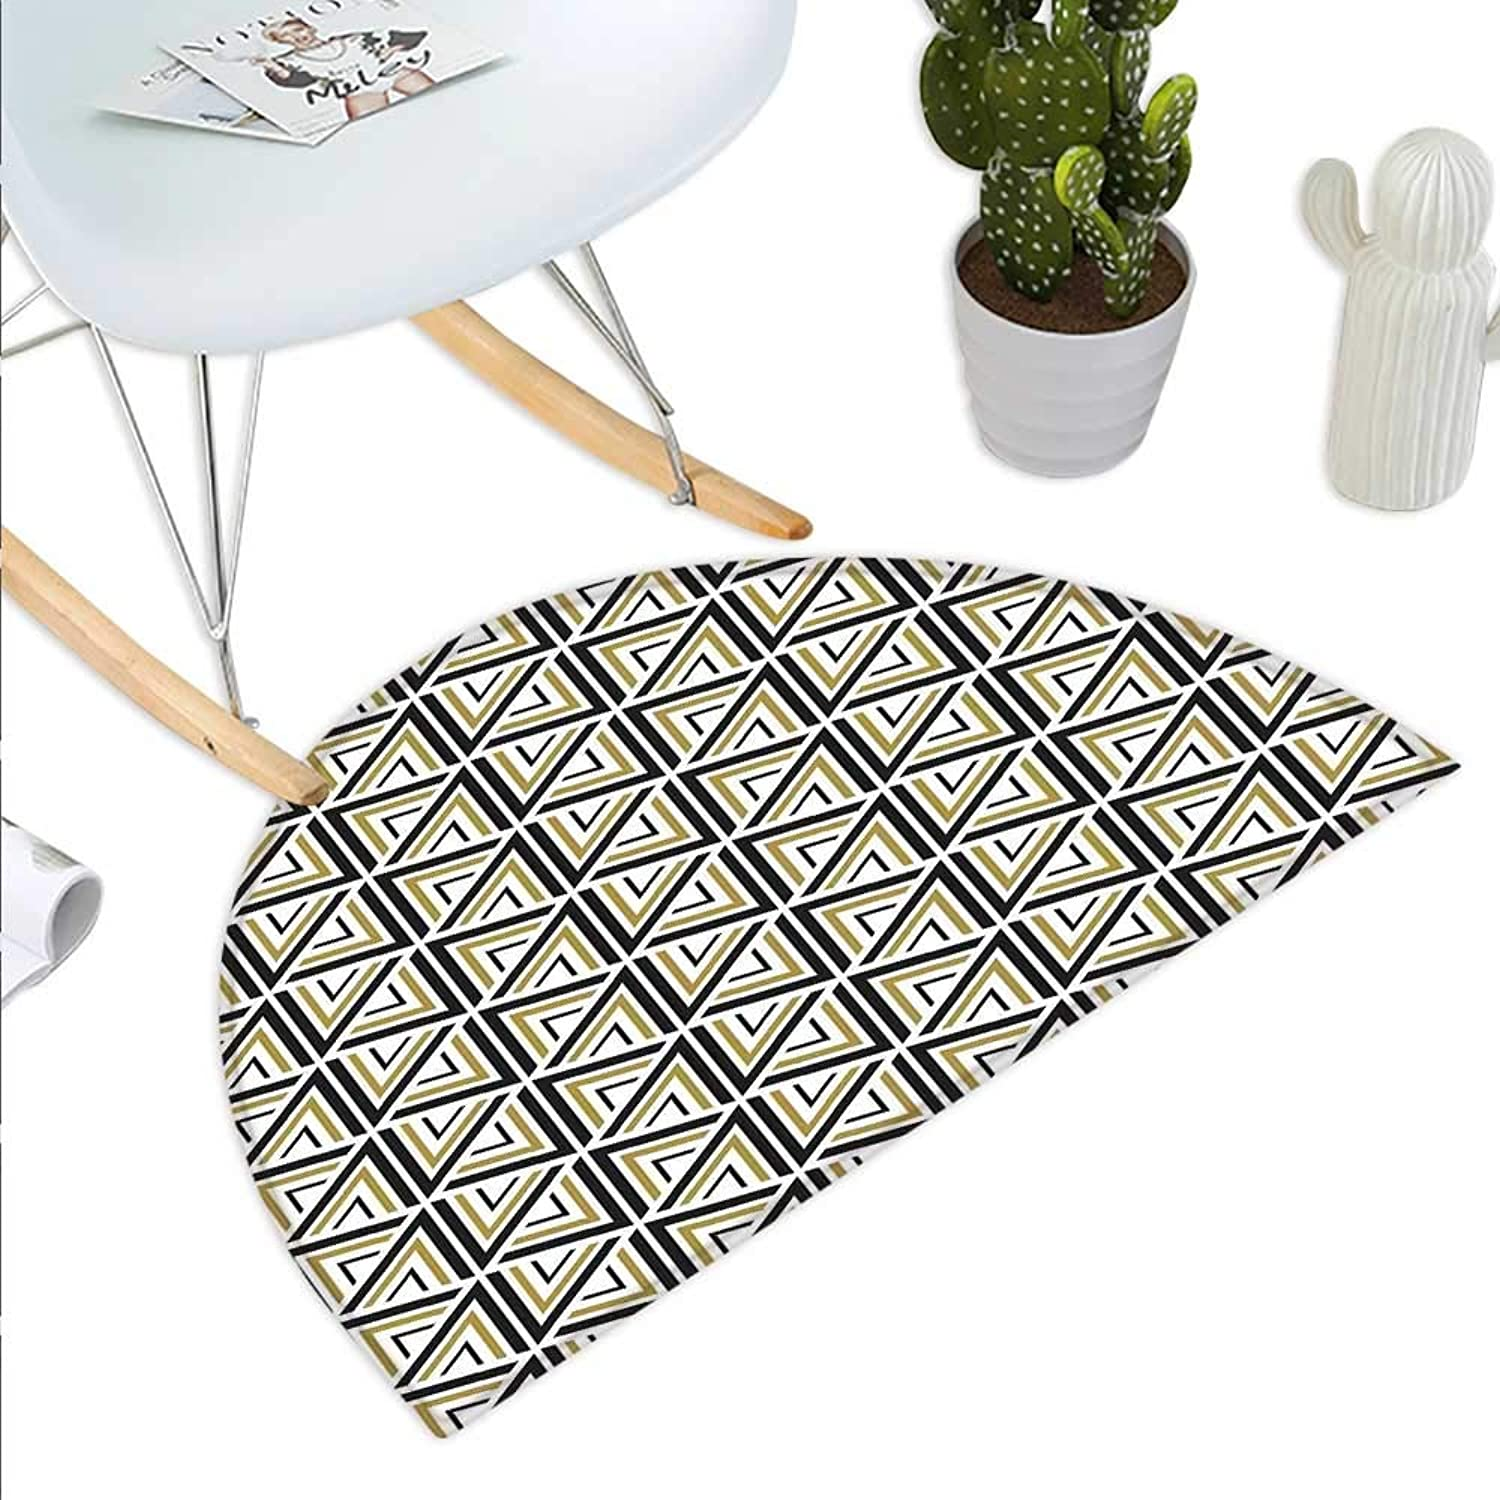 Geometric Semicircle Doormat Modern Stylish Triangle and Diamond Repeating Line Tiling Figures Image Halfmoon doormats H 39.3  xD 59  Mustard and Black